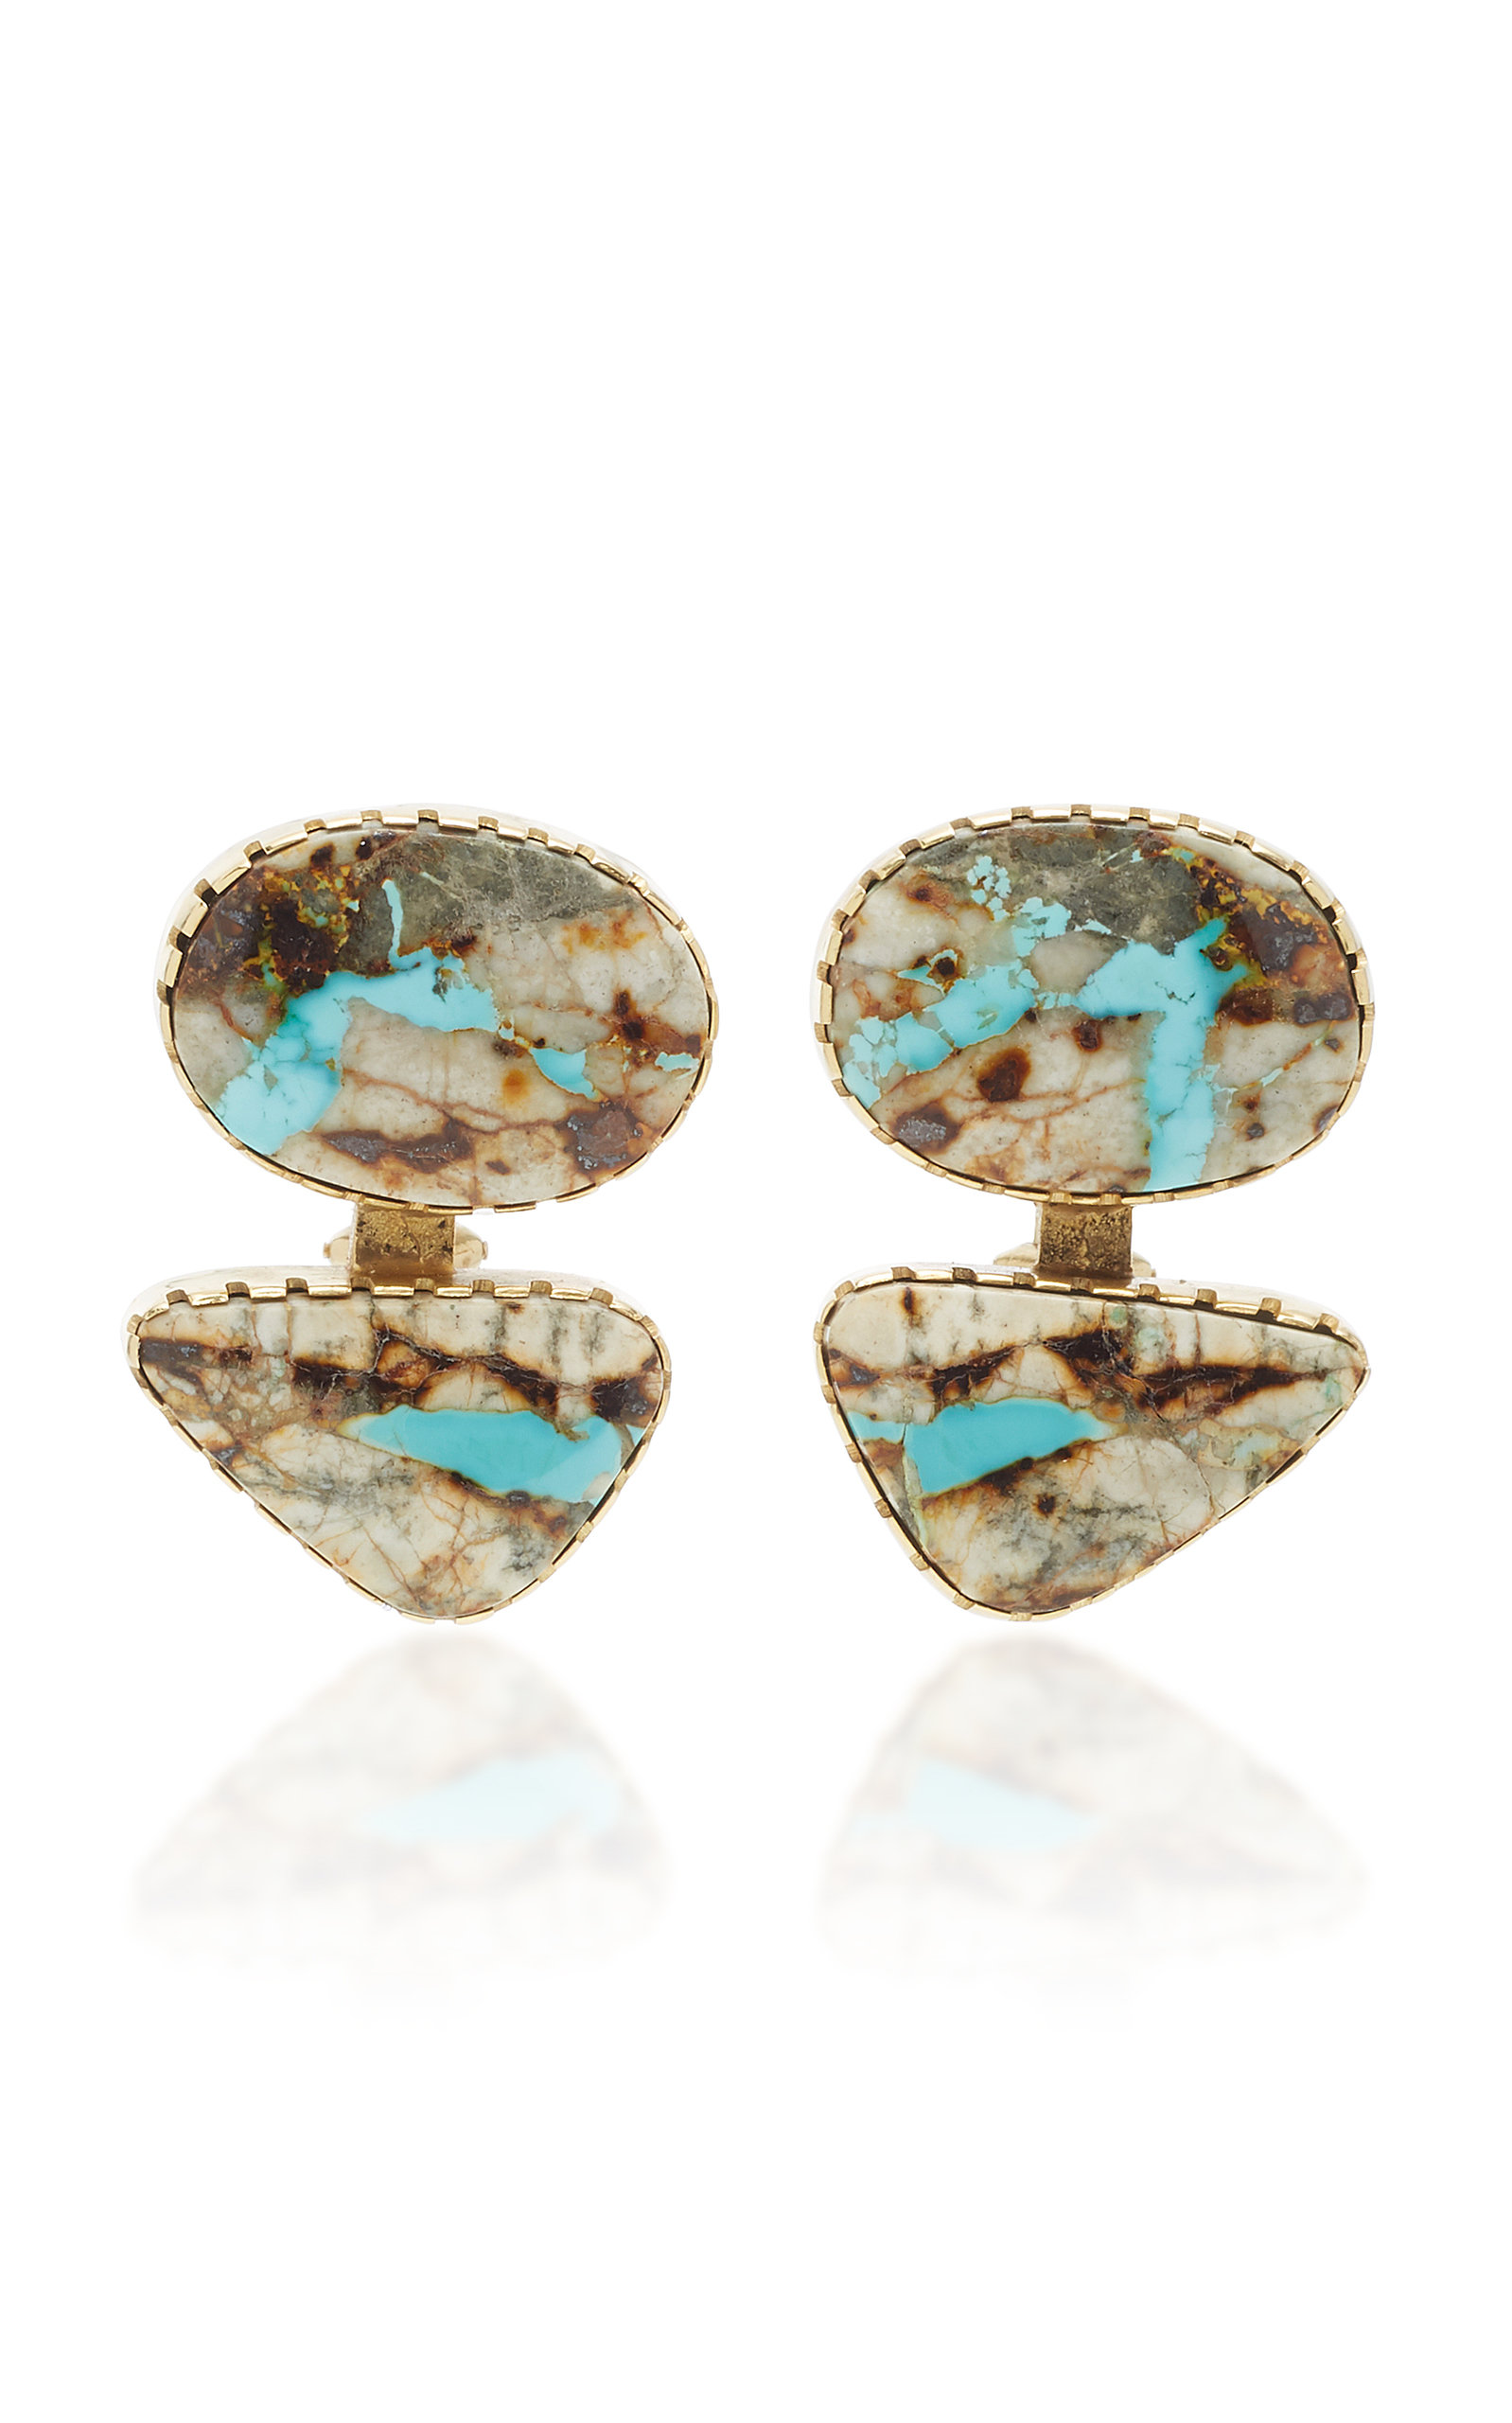 MAHNAZ COLLECTION ONE-OF-A-KIND 18K GOLD AND JASPER EARRINGS BY GAIL BIRD AND YAZZIE JOHNSON.